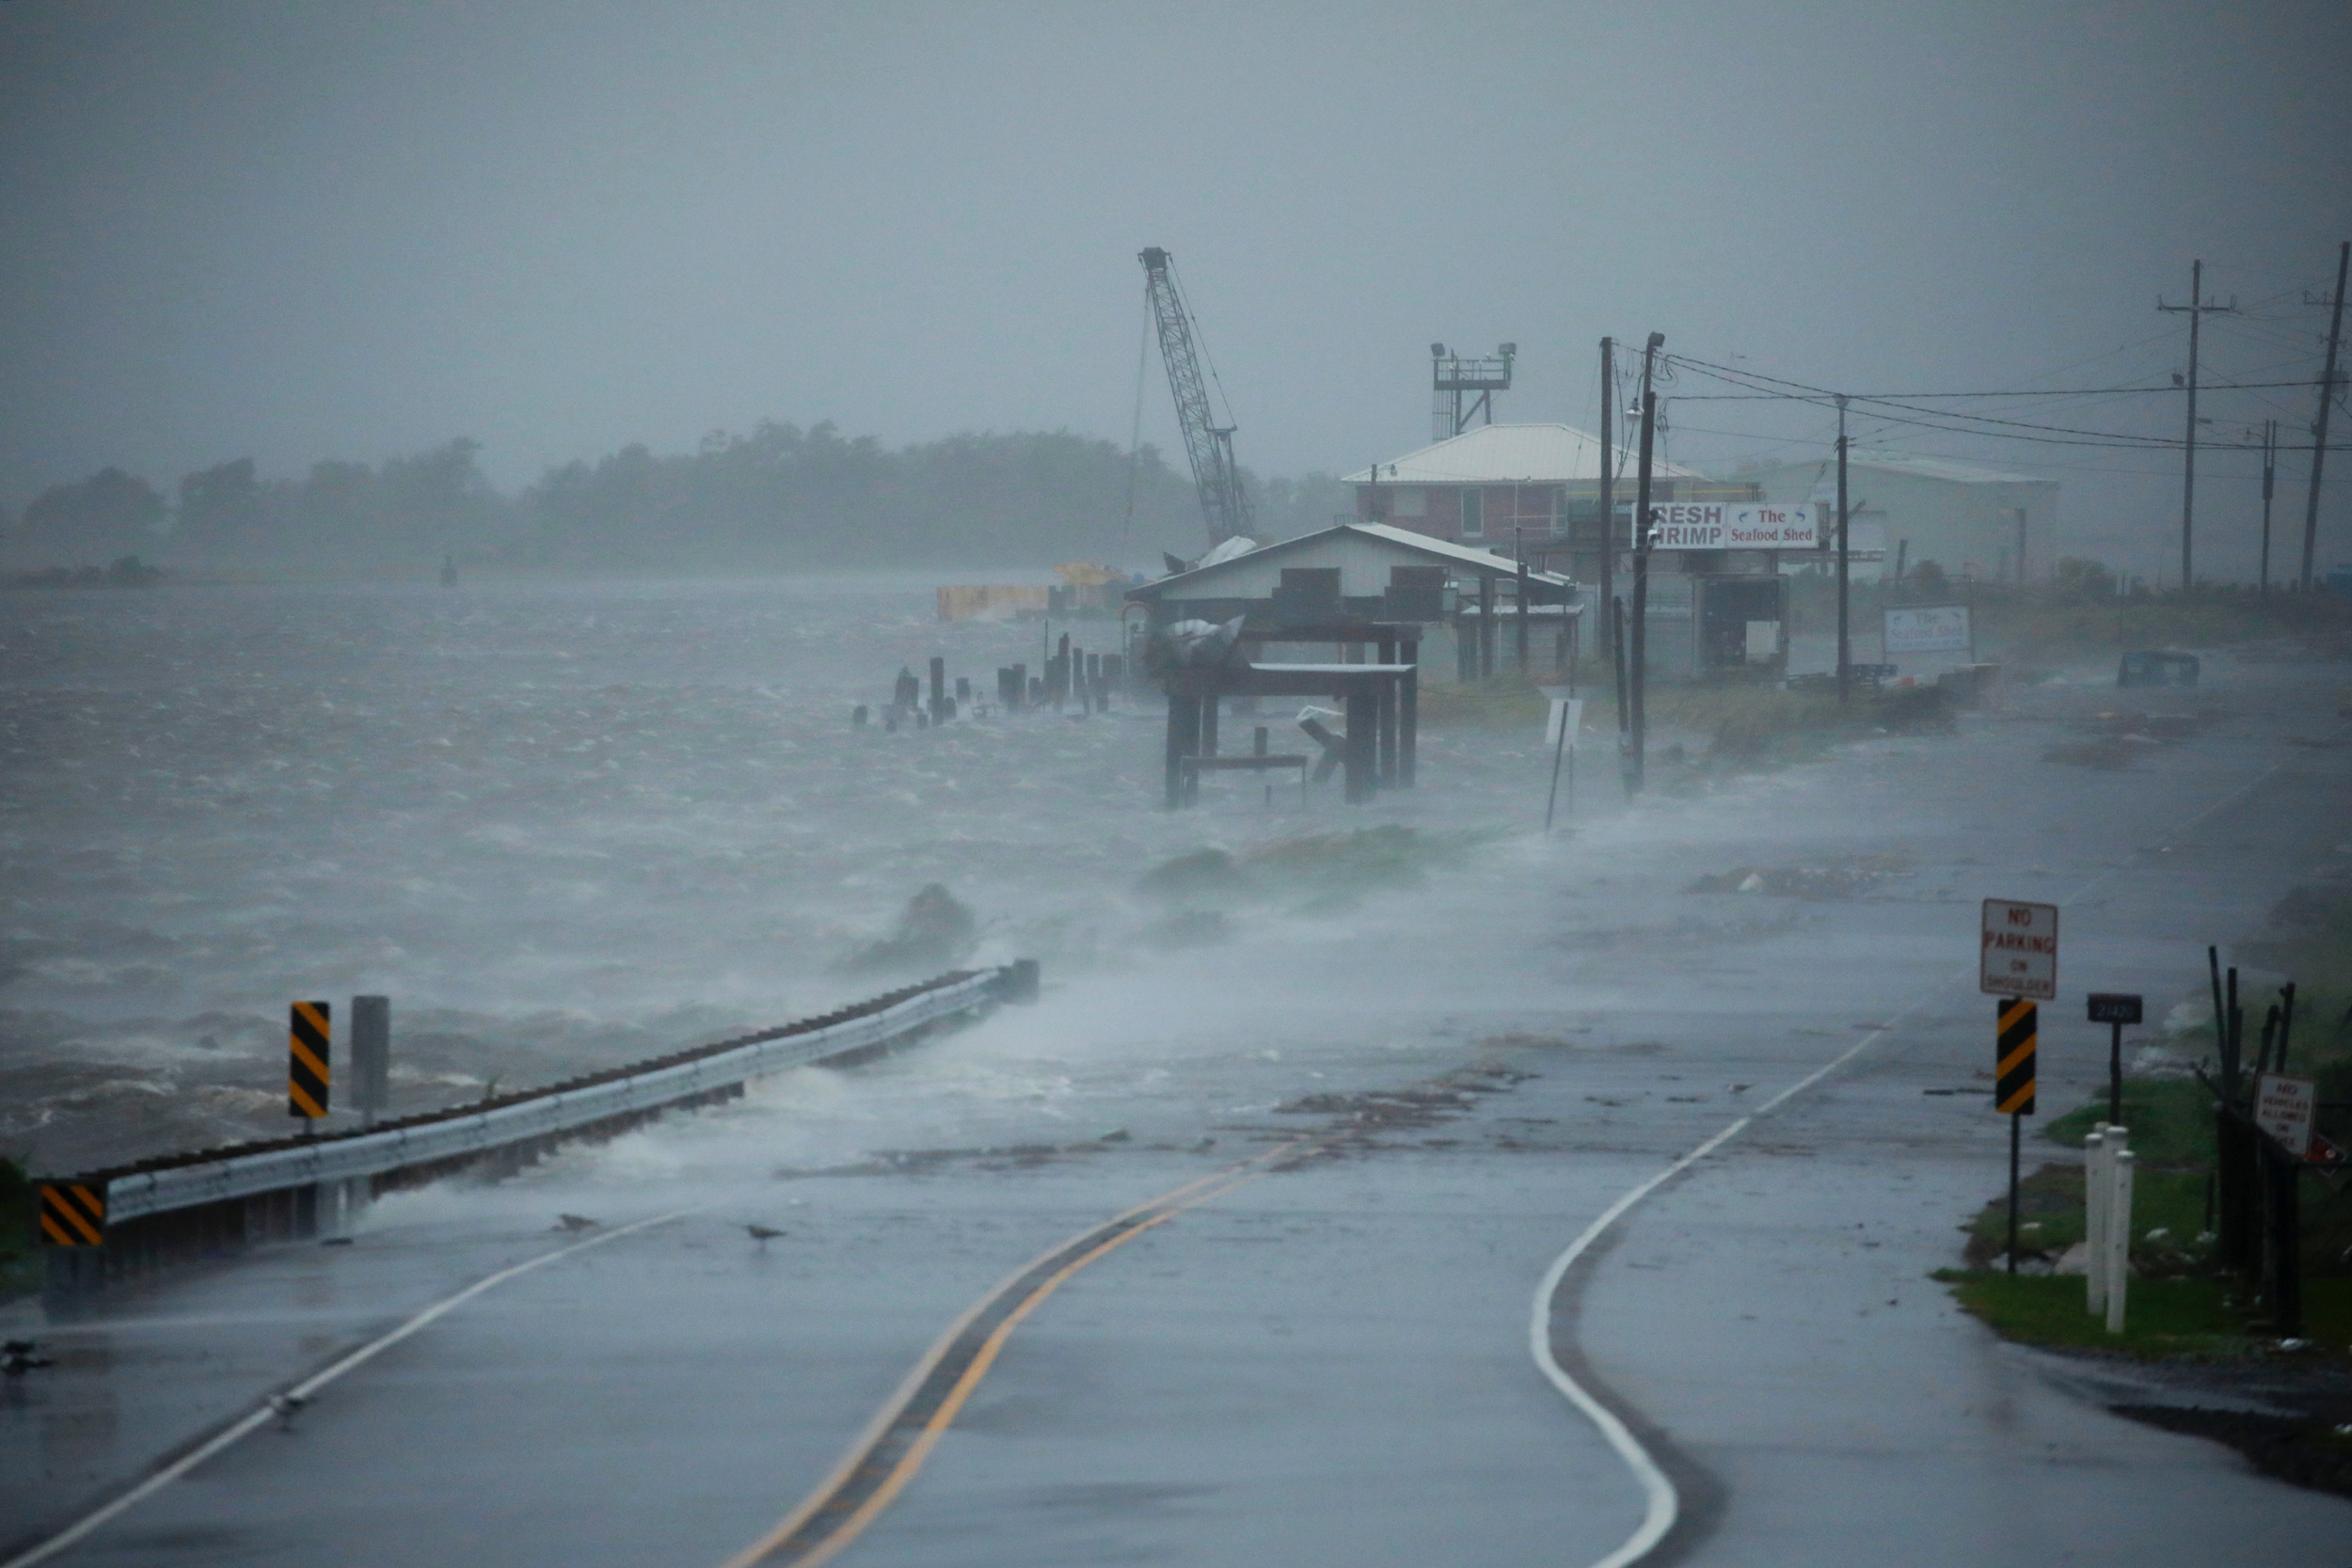 This is the key difference between Ida and Katrina, according to experts